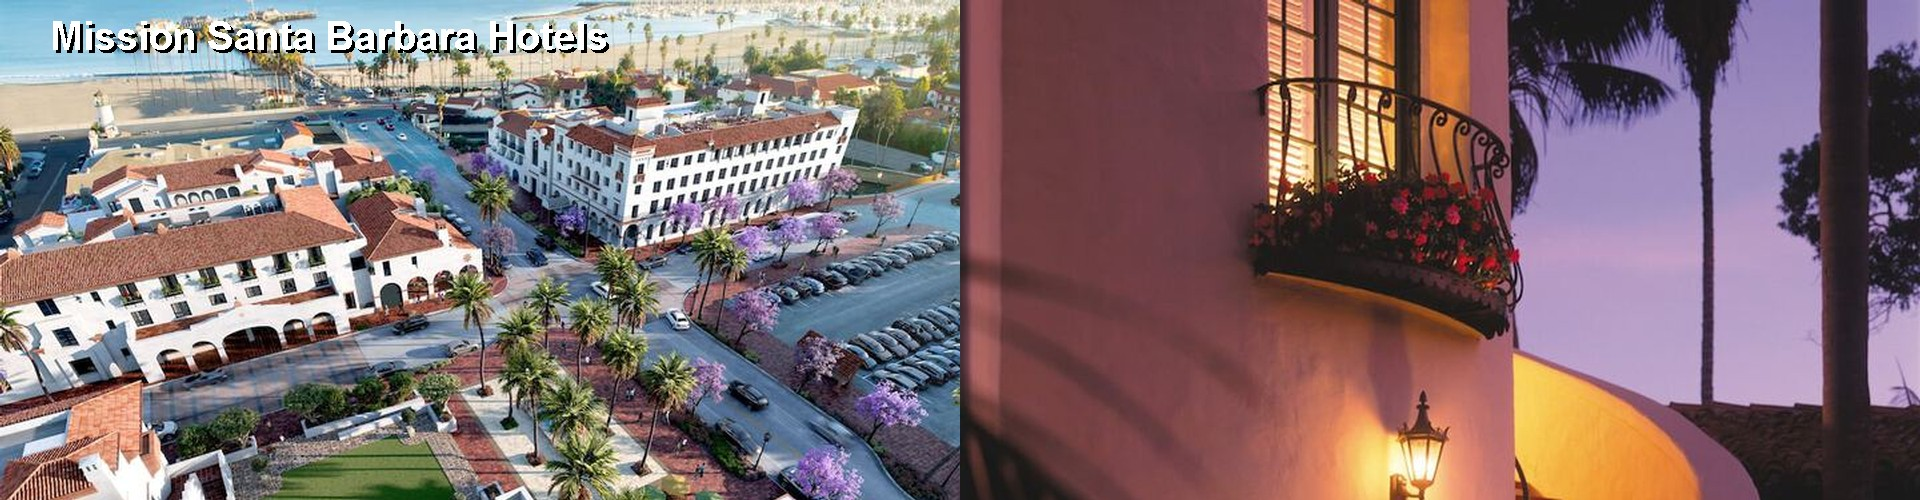 6 Best Hotels To Visit In Santa Barbara Visit CharmPosh.com Book Your Hotel  Here ...